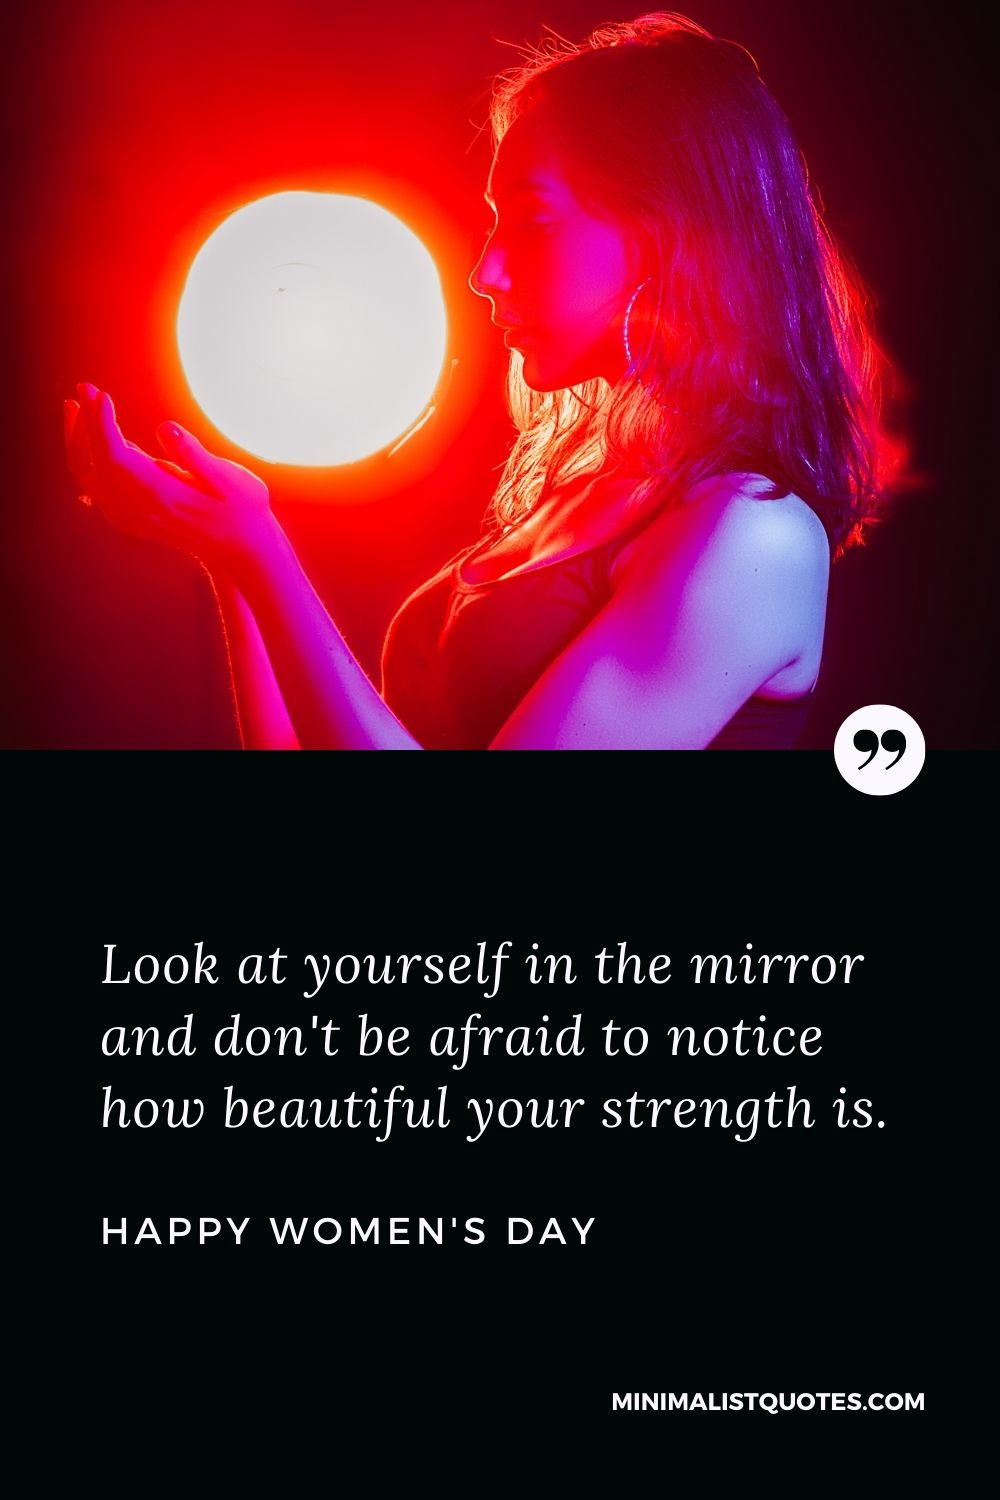 Women's Day Wish & Message With Image: Look at yourself in the mirror and don't be afraid to notice how beautiful your strength is. Happy Women's Day!